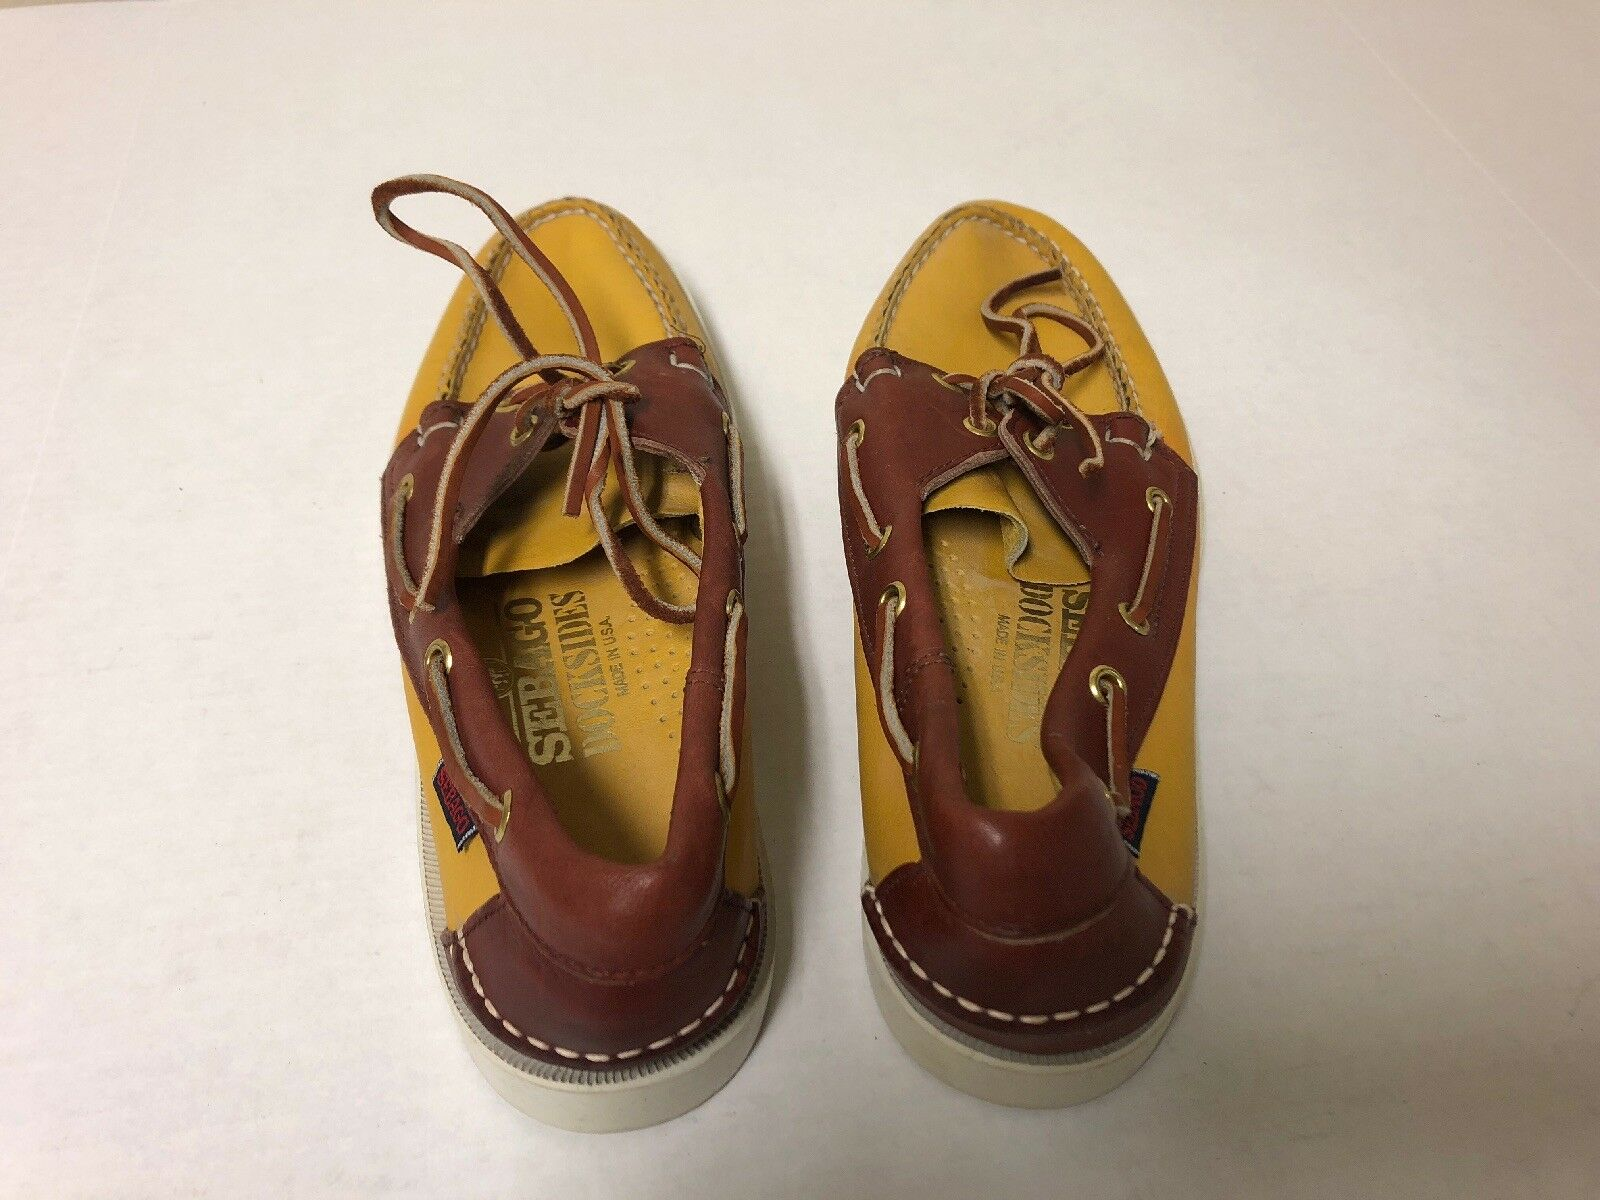 Sebago Docksides Yellow and Brown Leather Boat Deck Loafers shoes Men's 7.5 M